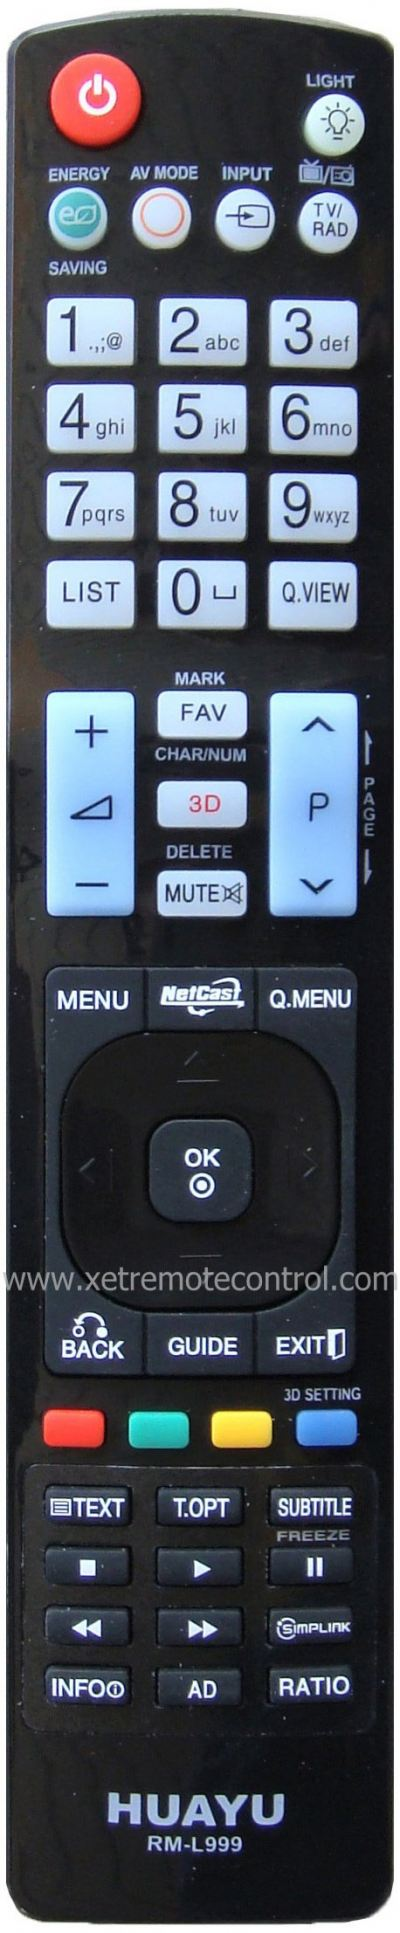 RM-L999 LG LCD/LED TV REMOTE CONTROL